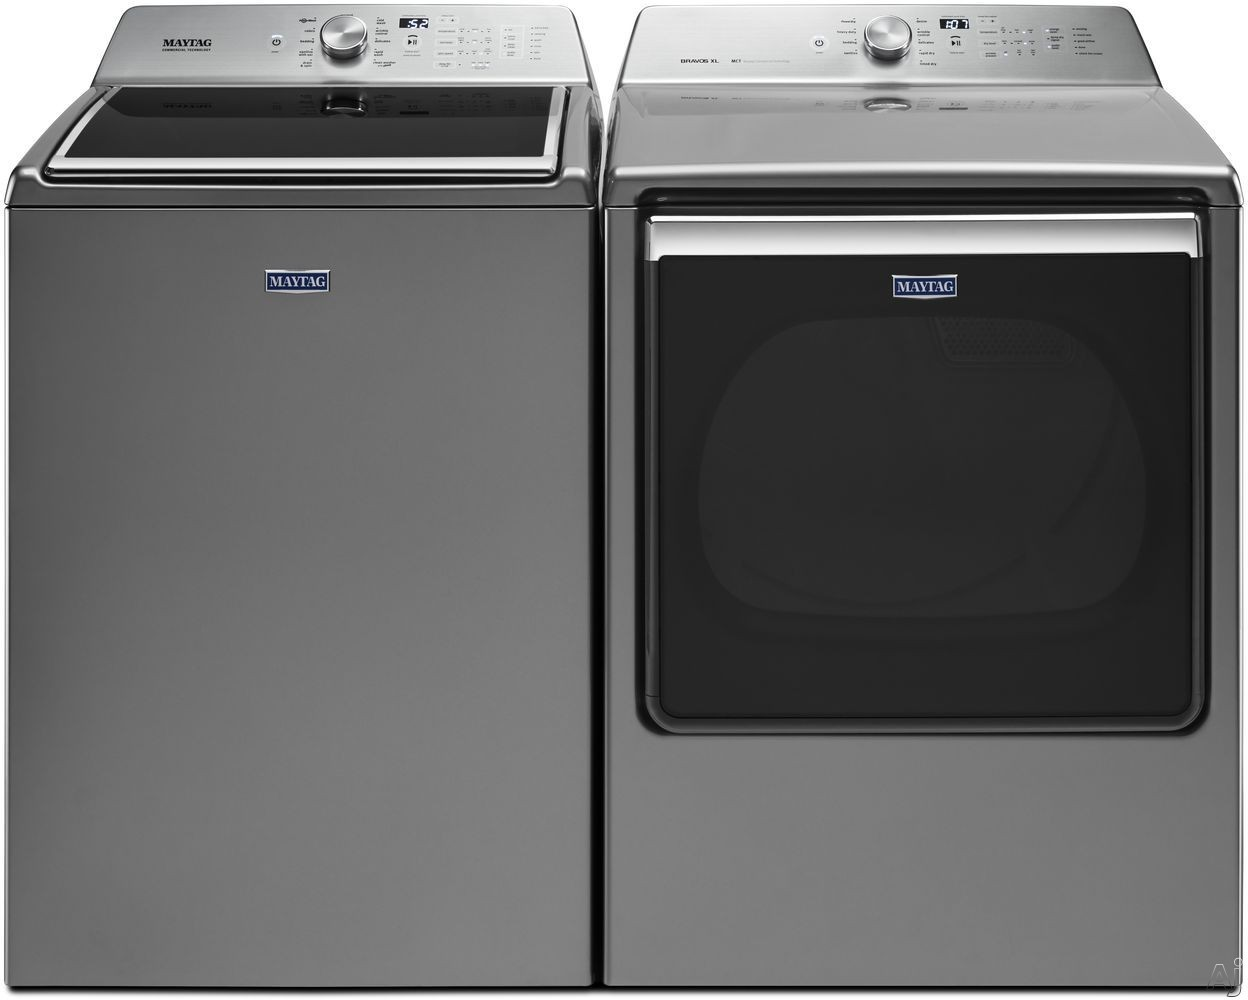 Maytag Mawadrgc8651 Side By Side Washer Amp Dryer Set With